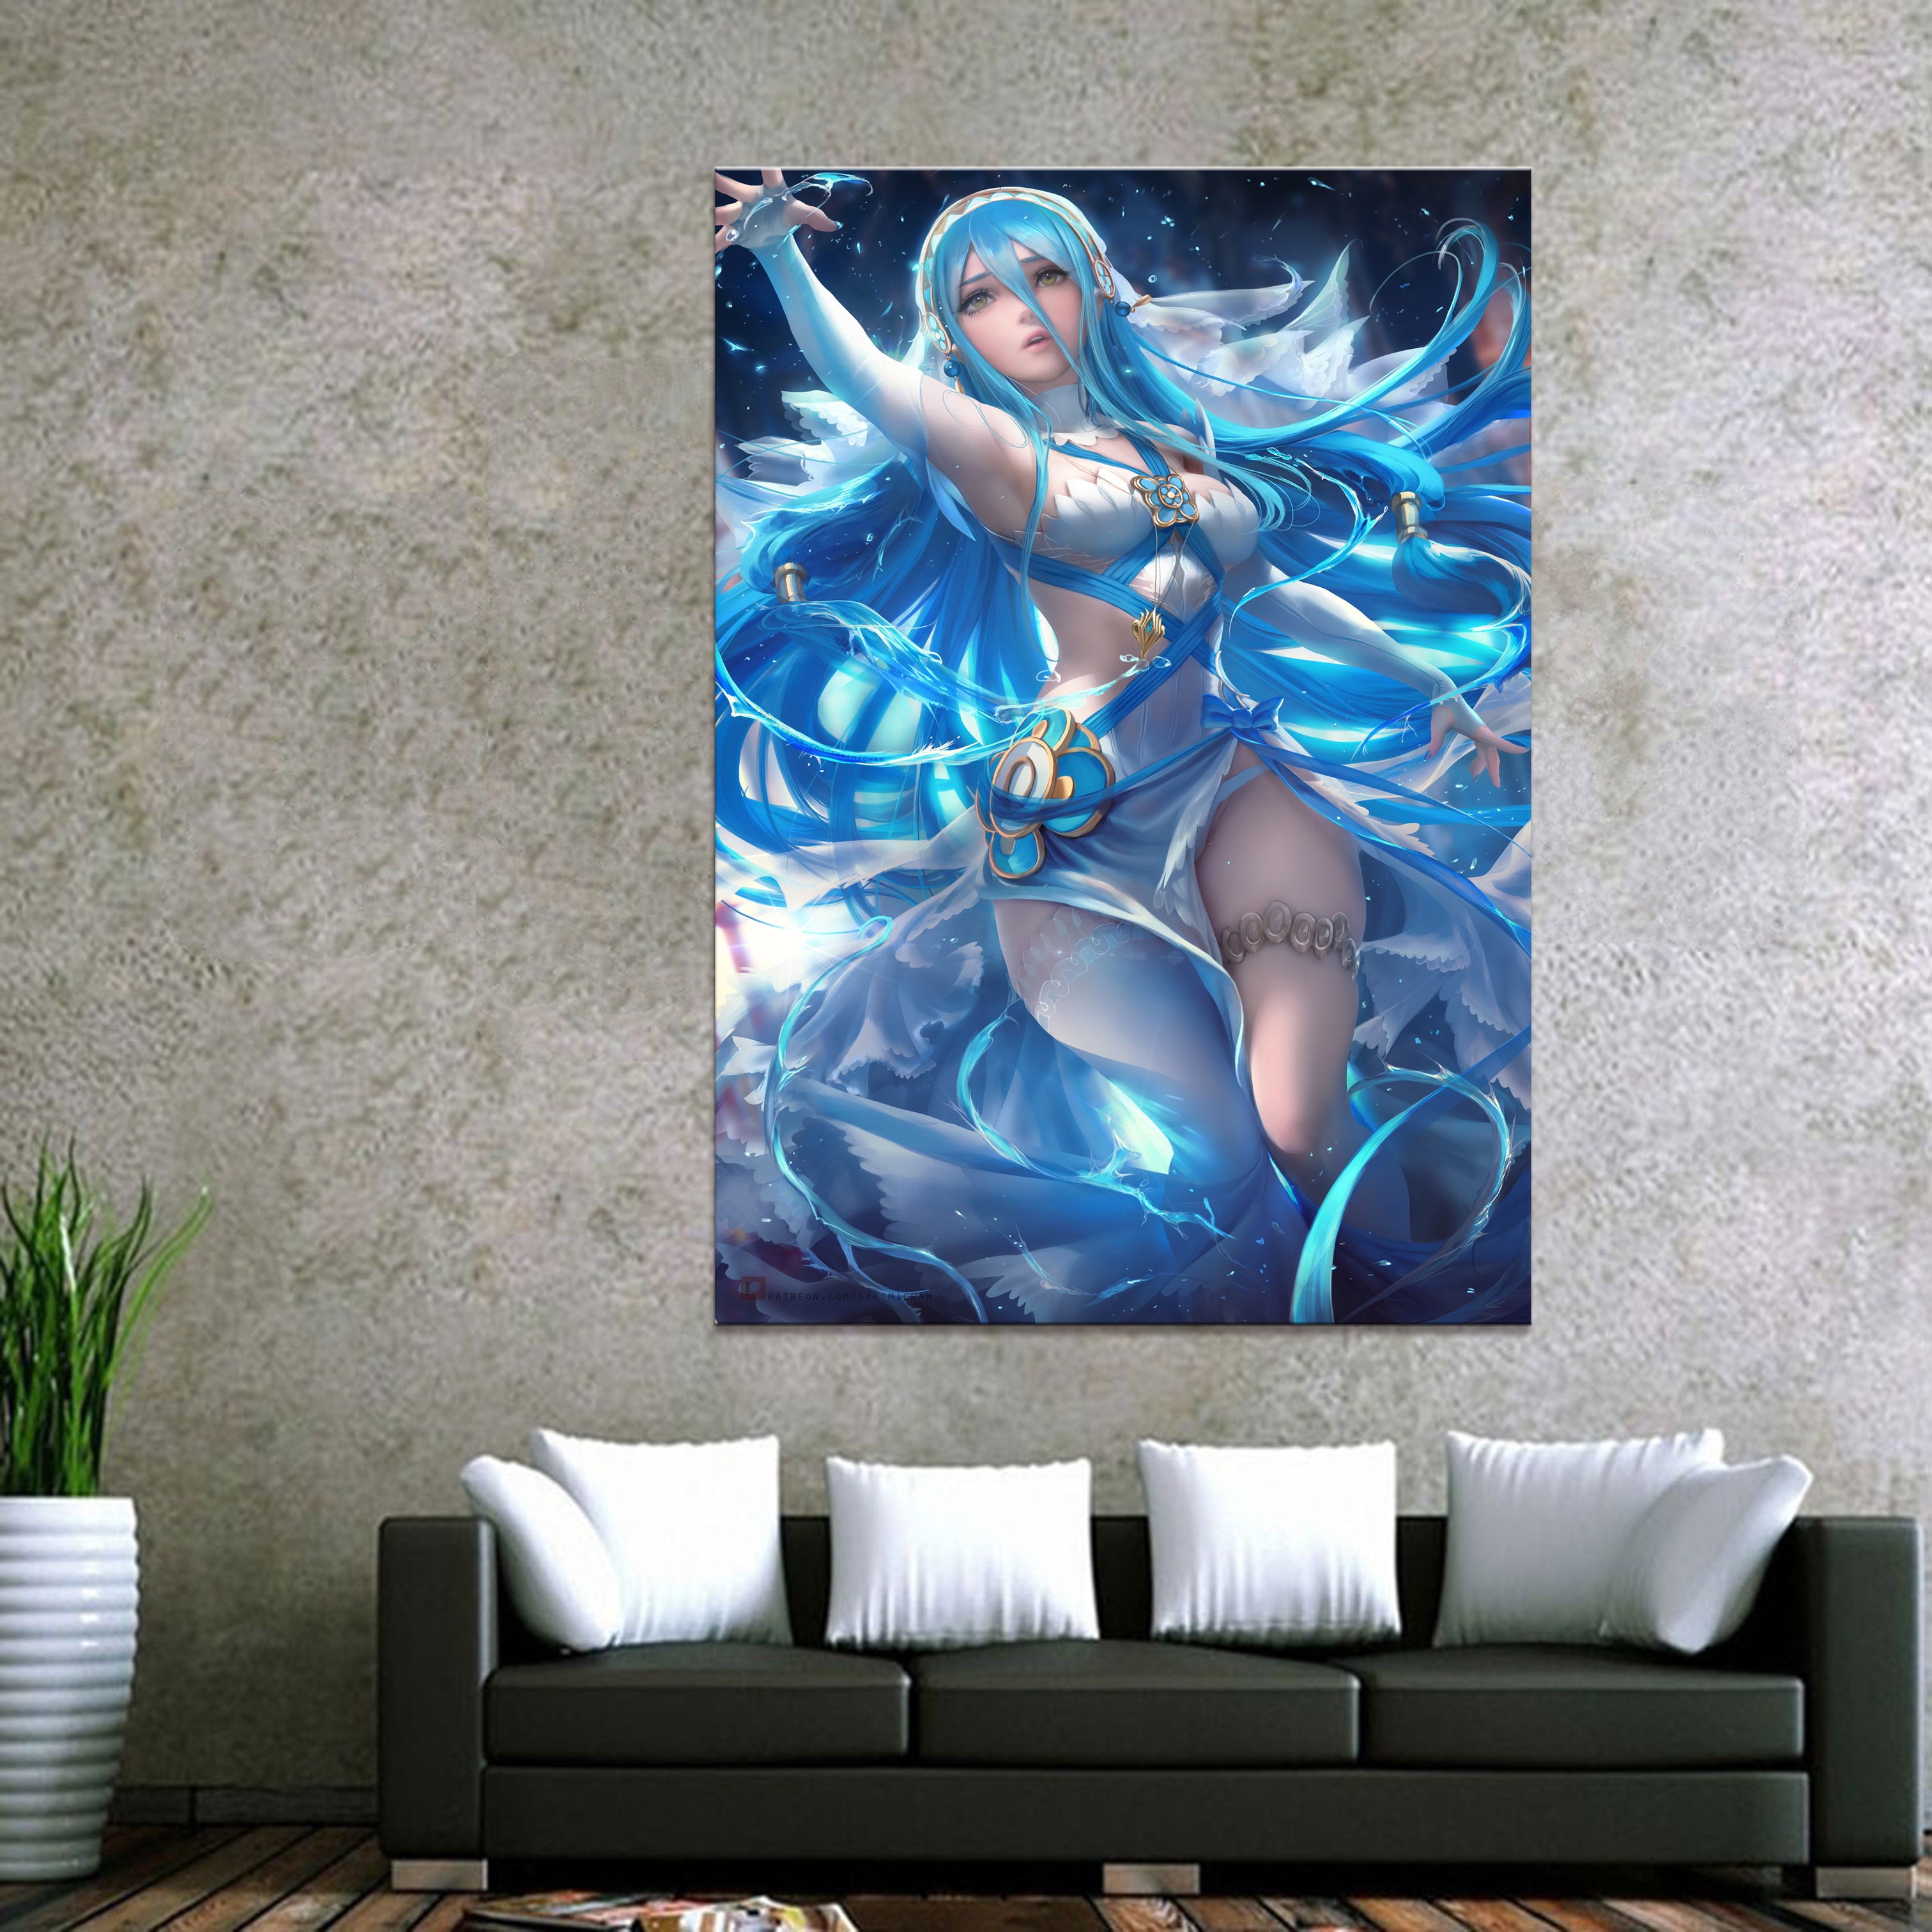 Home Decor Canvas Fire Emblem Azura Game 1 Piece Anime Sexy Girl Art Poster Prints Picture Wall Decoration Painting Wholesale in Painting Calligraphy from Home Garden